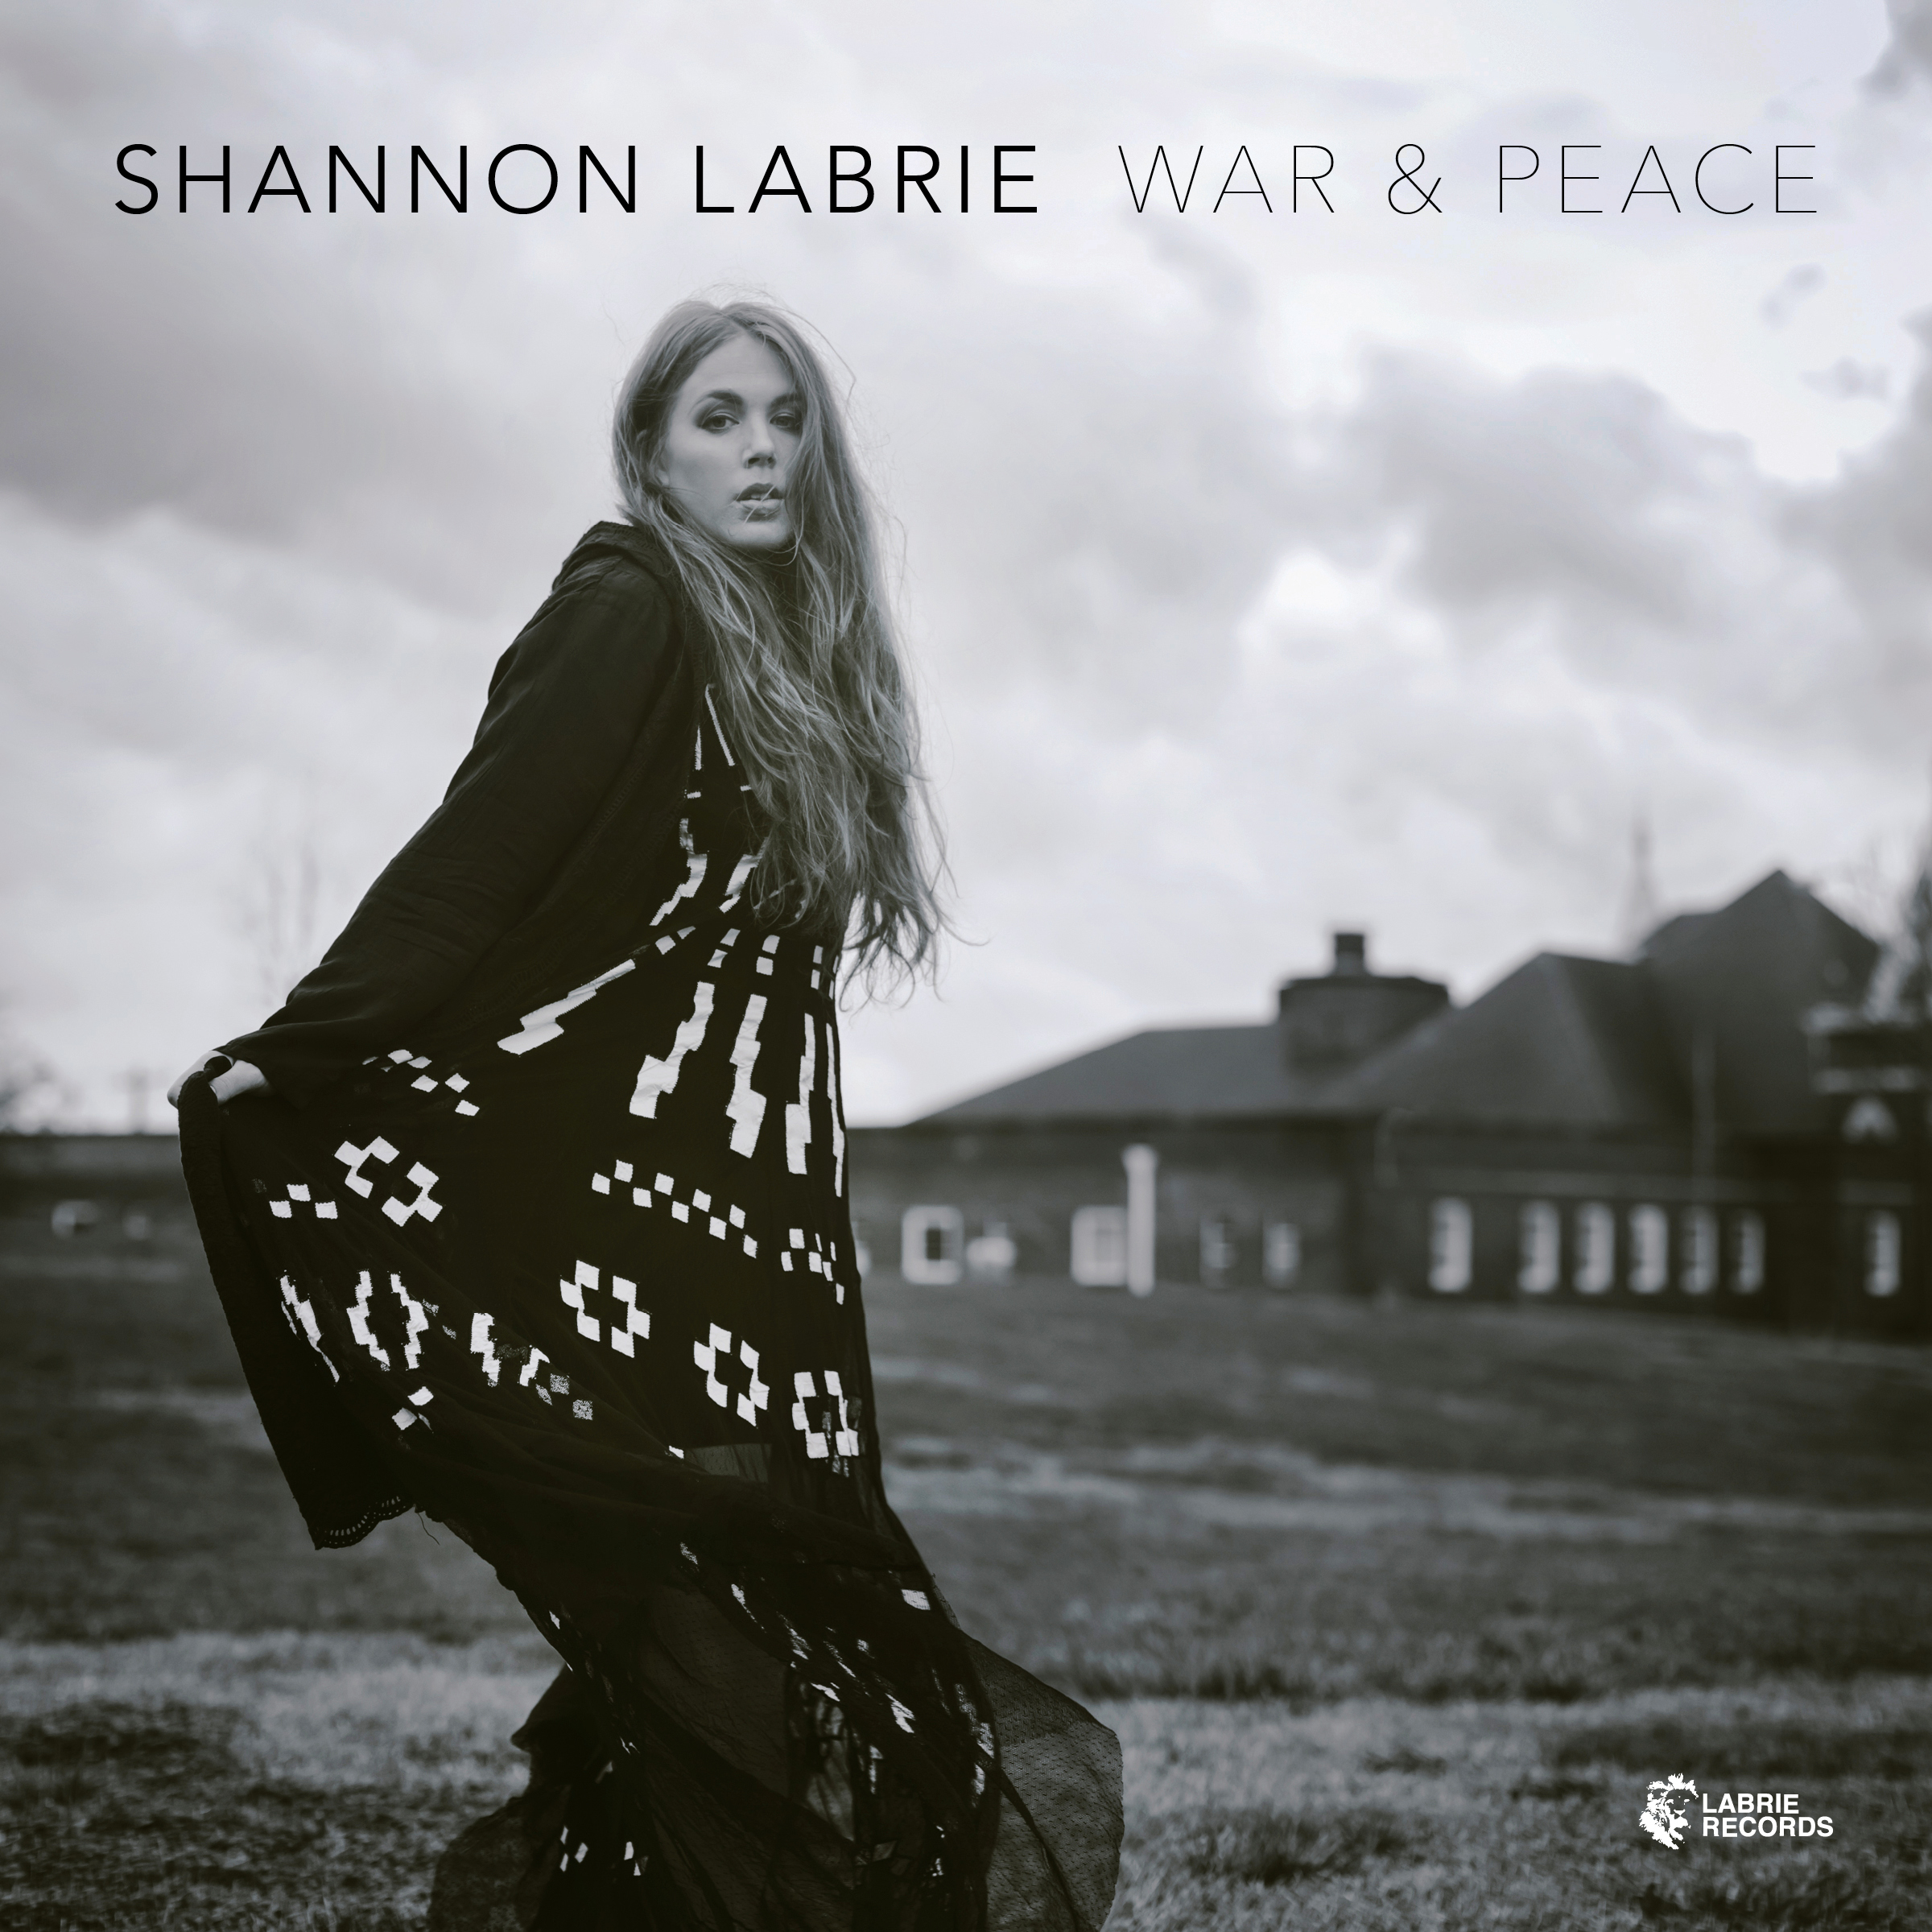 Shannon LaBrie: War & Peace